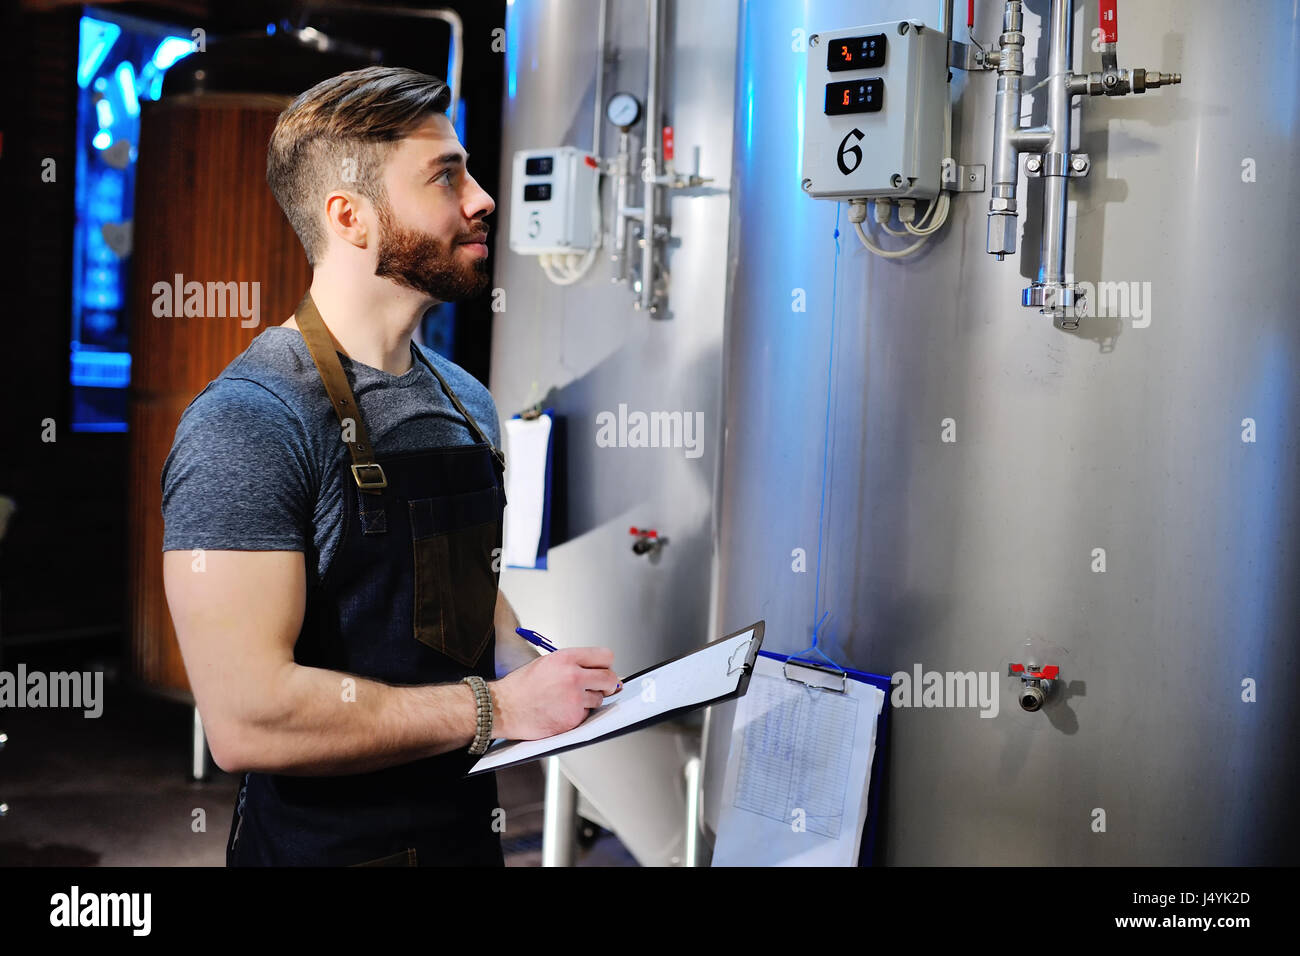 A handsome bearded male brewer records data against a background of beer tanks. Brewing - Stock Image